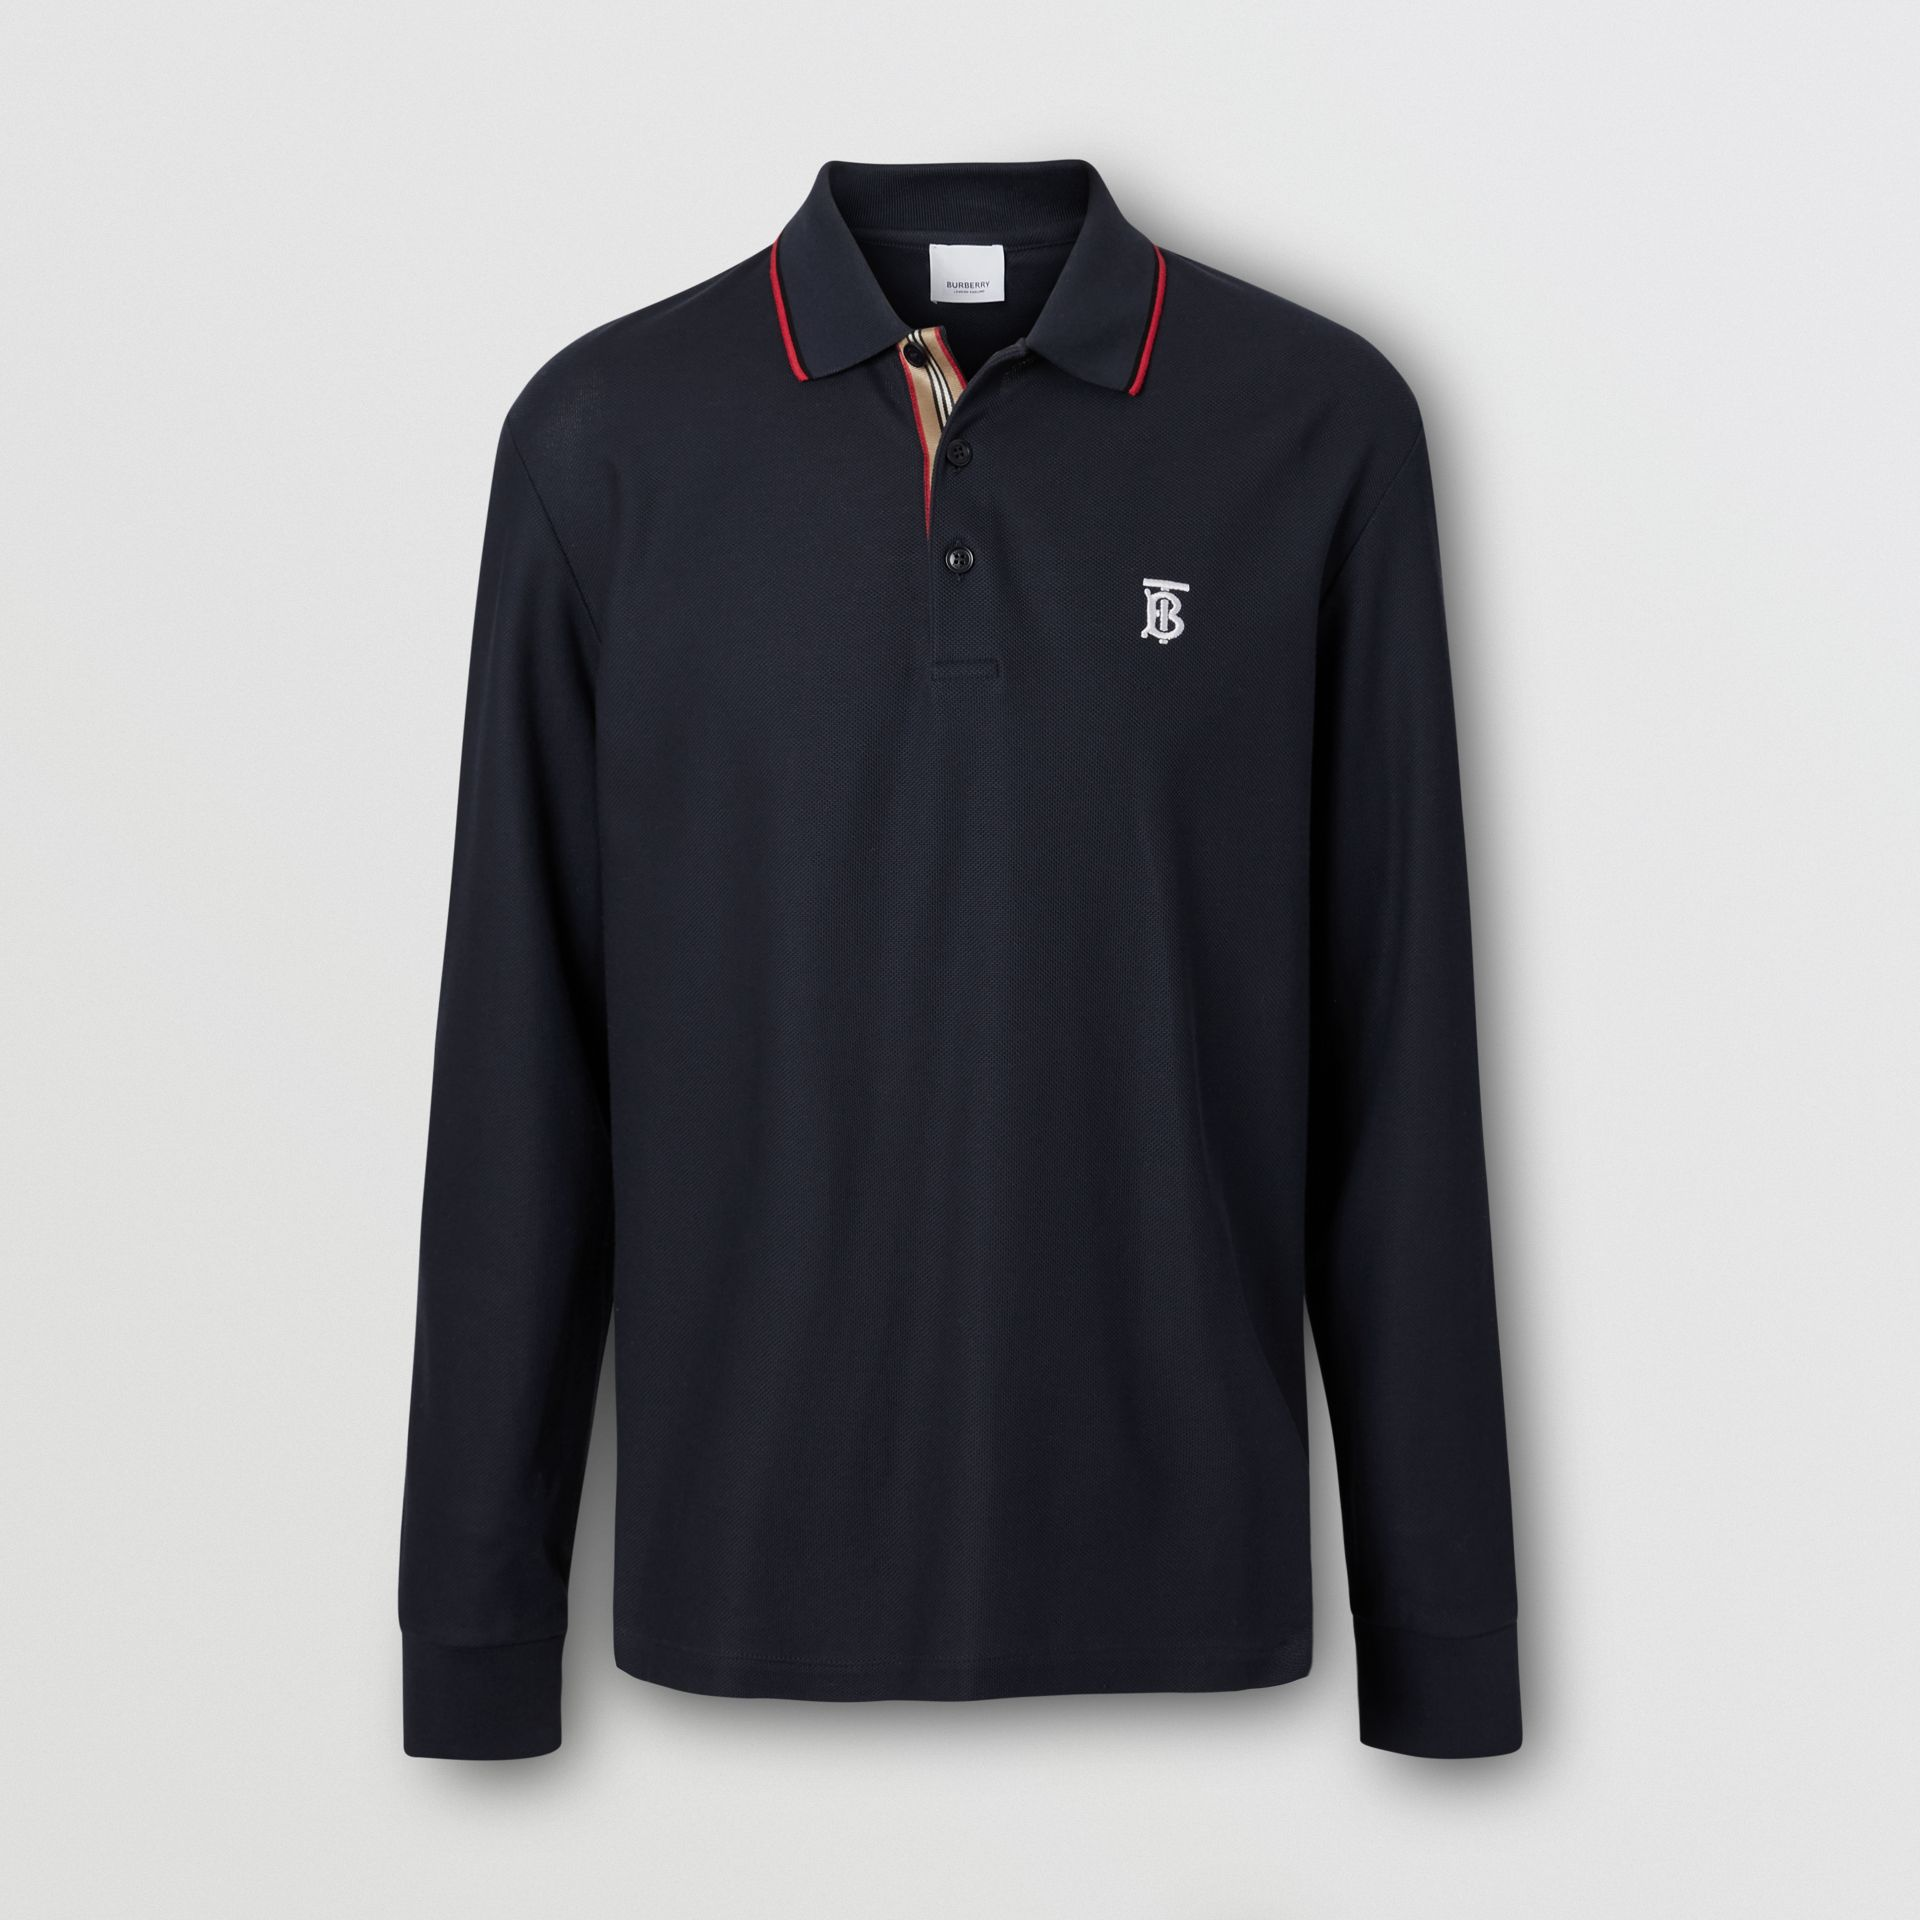 Long-sleeve Monogram Motif Cotton Piqué Polo Shirt in Navy - Men | Burberry Hong Kong S.A.R - gallery image 3